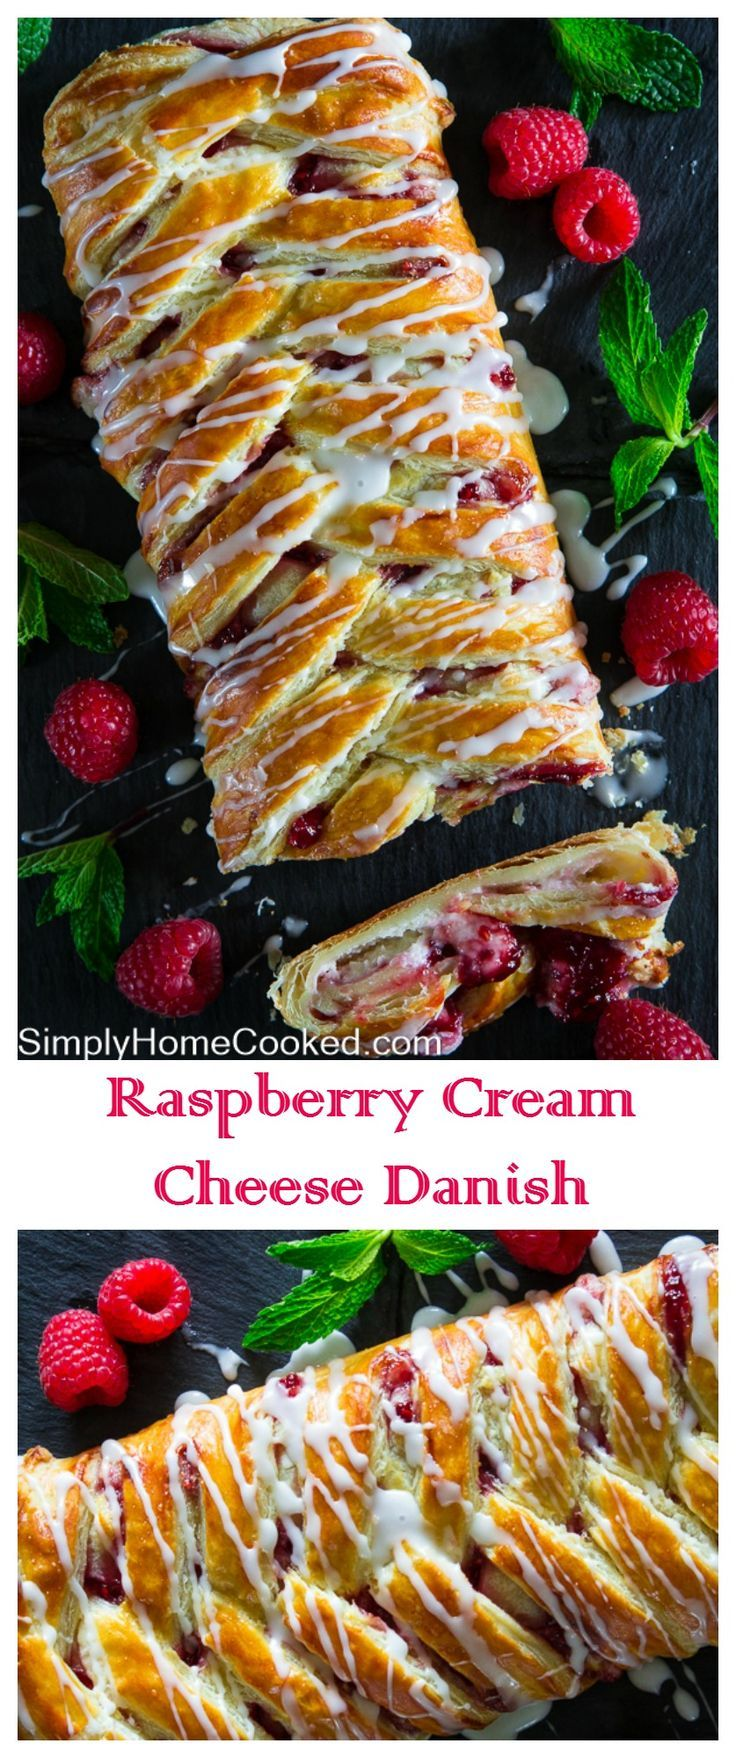 The most effortless yet delicious Danish pastry you'll ever come by!